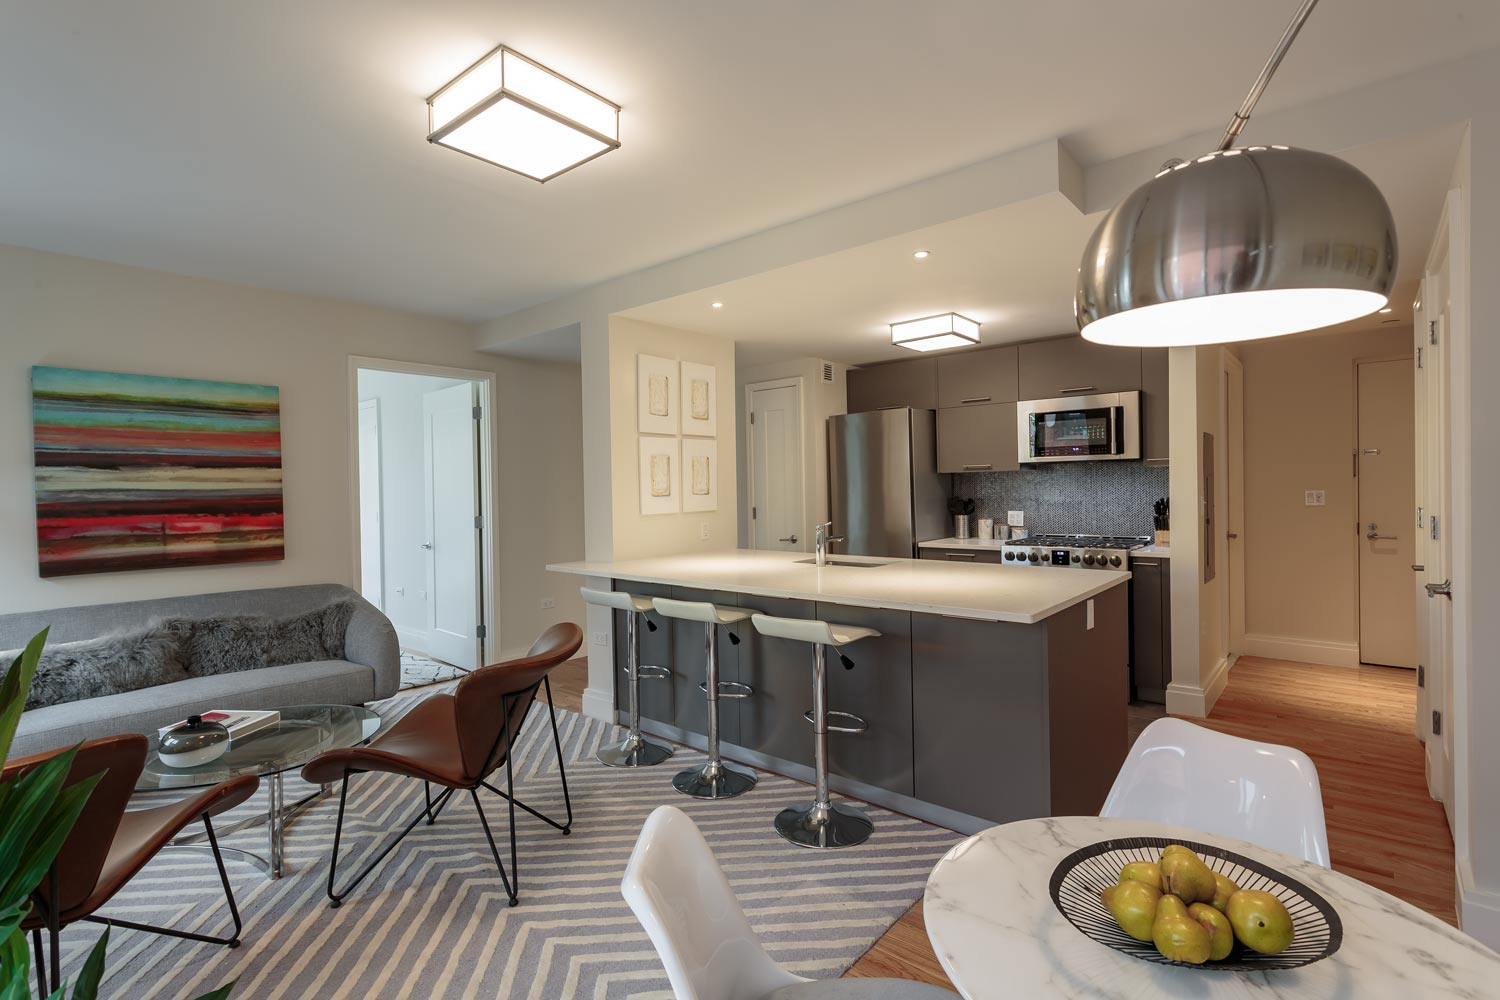 Each unit at The Milo features open kitchen living spaces.